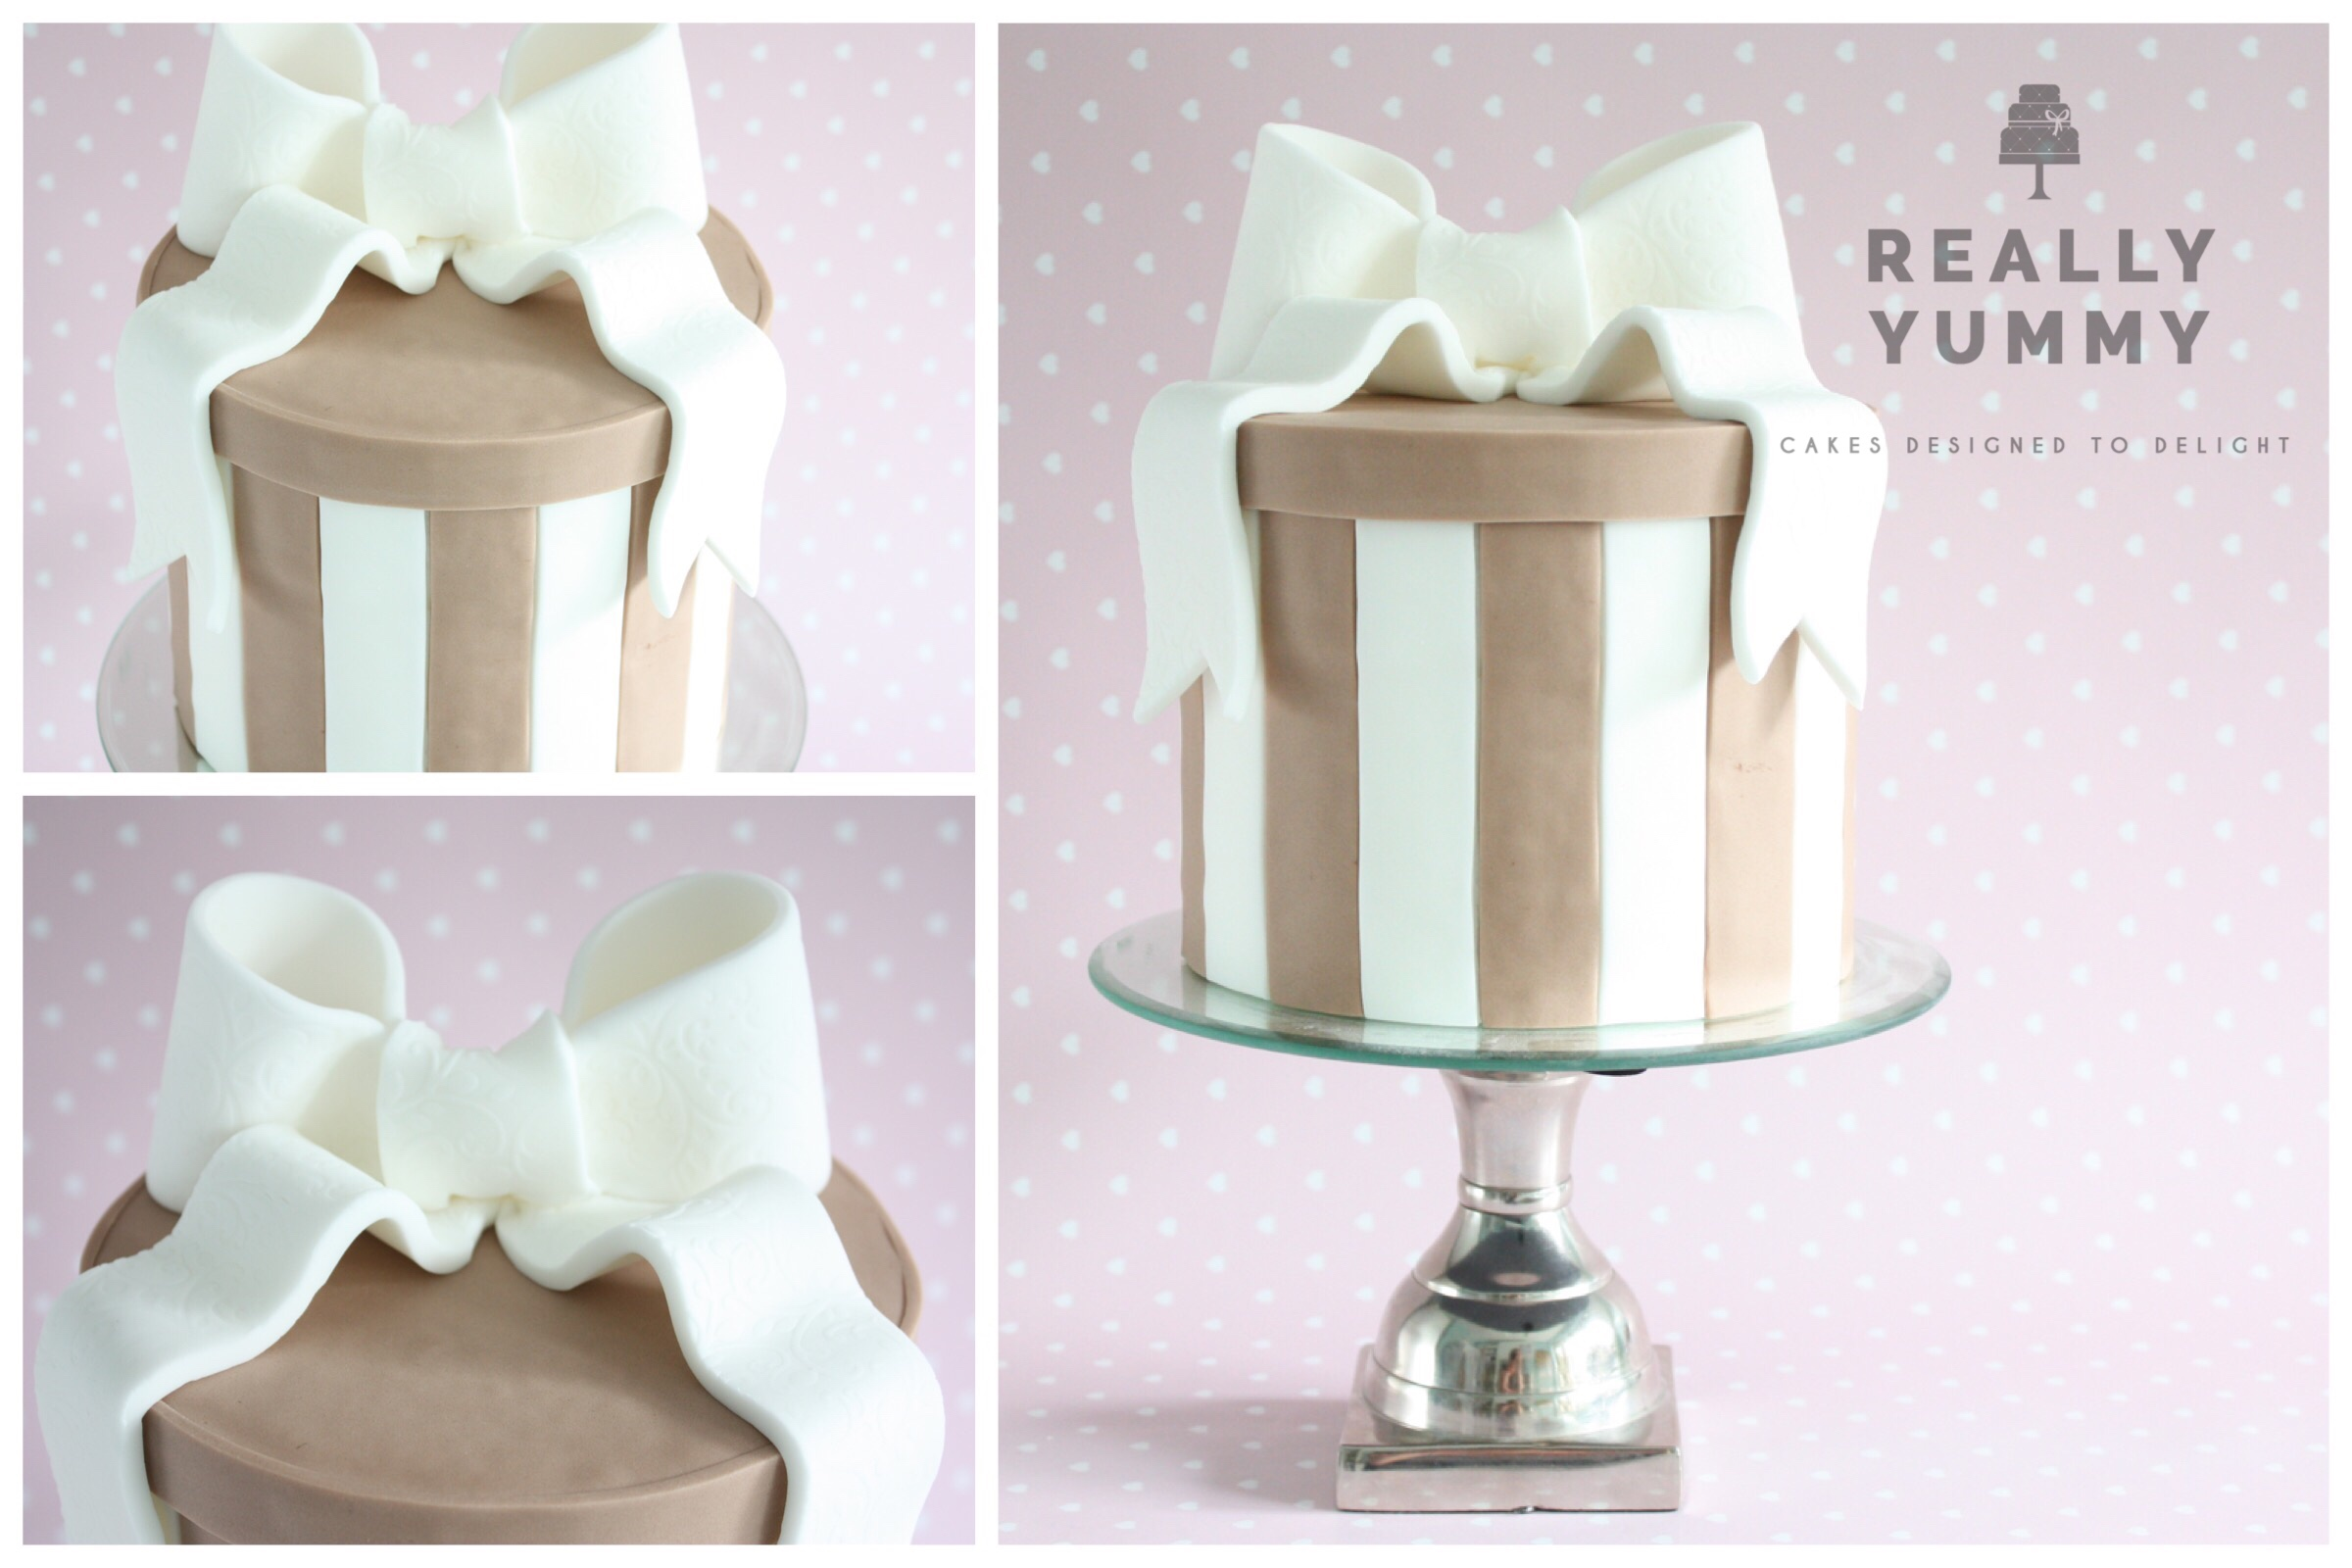 Striped cake with a bow, in neutrals